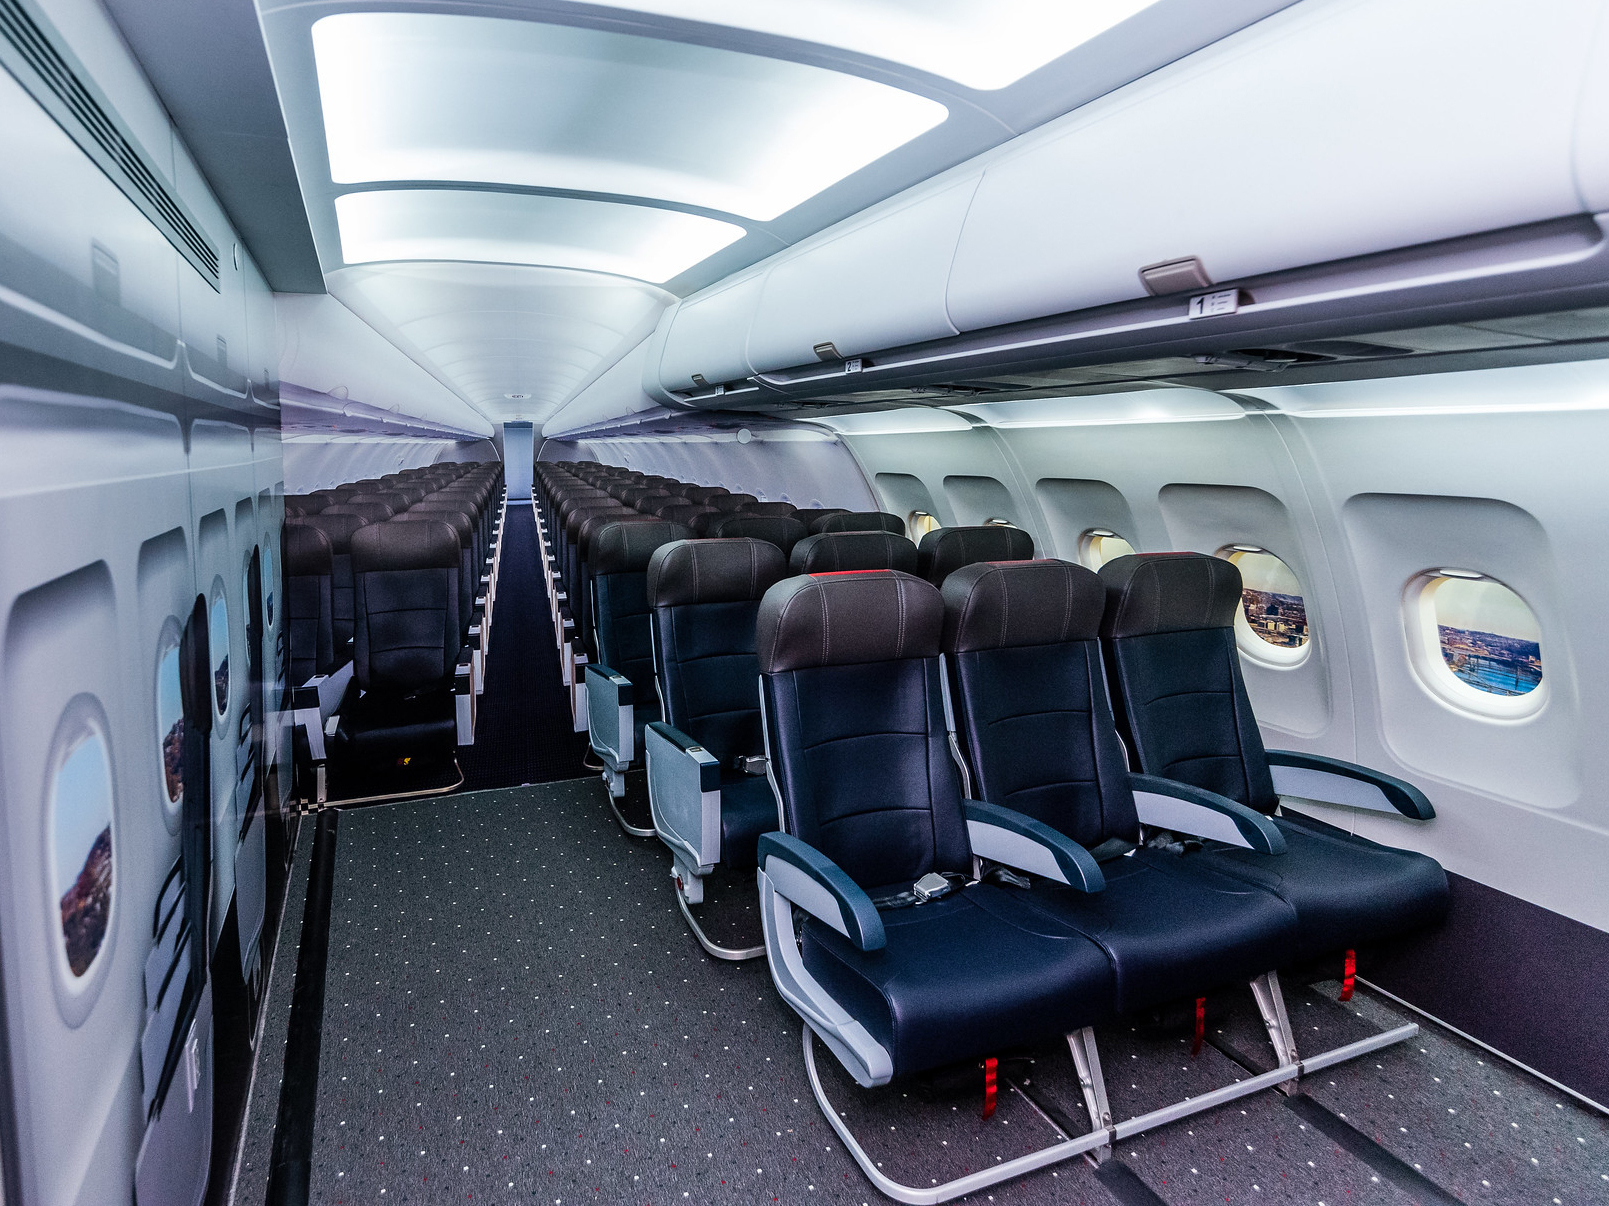 Kids And Adults With Autism Flying Easier In Pittsburgh, With